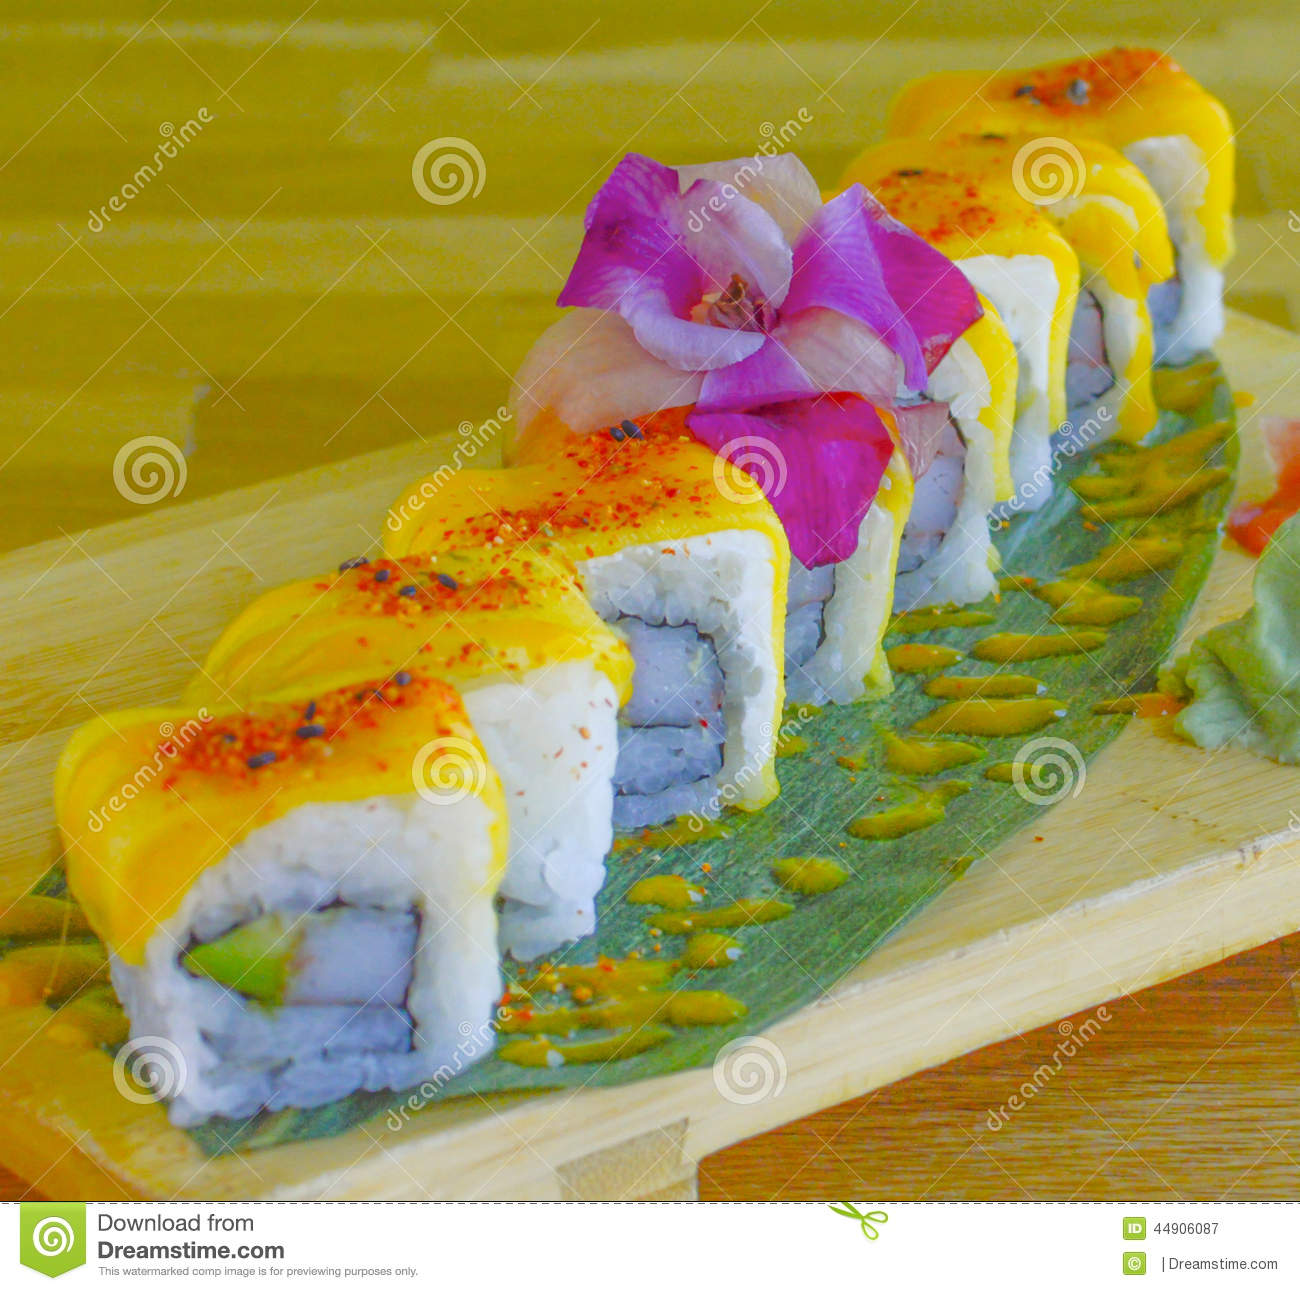 Mango Sushi Roll Stock Photo - Image: 44906087